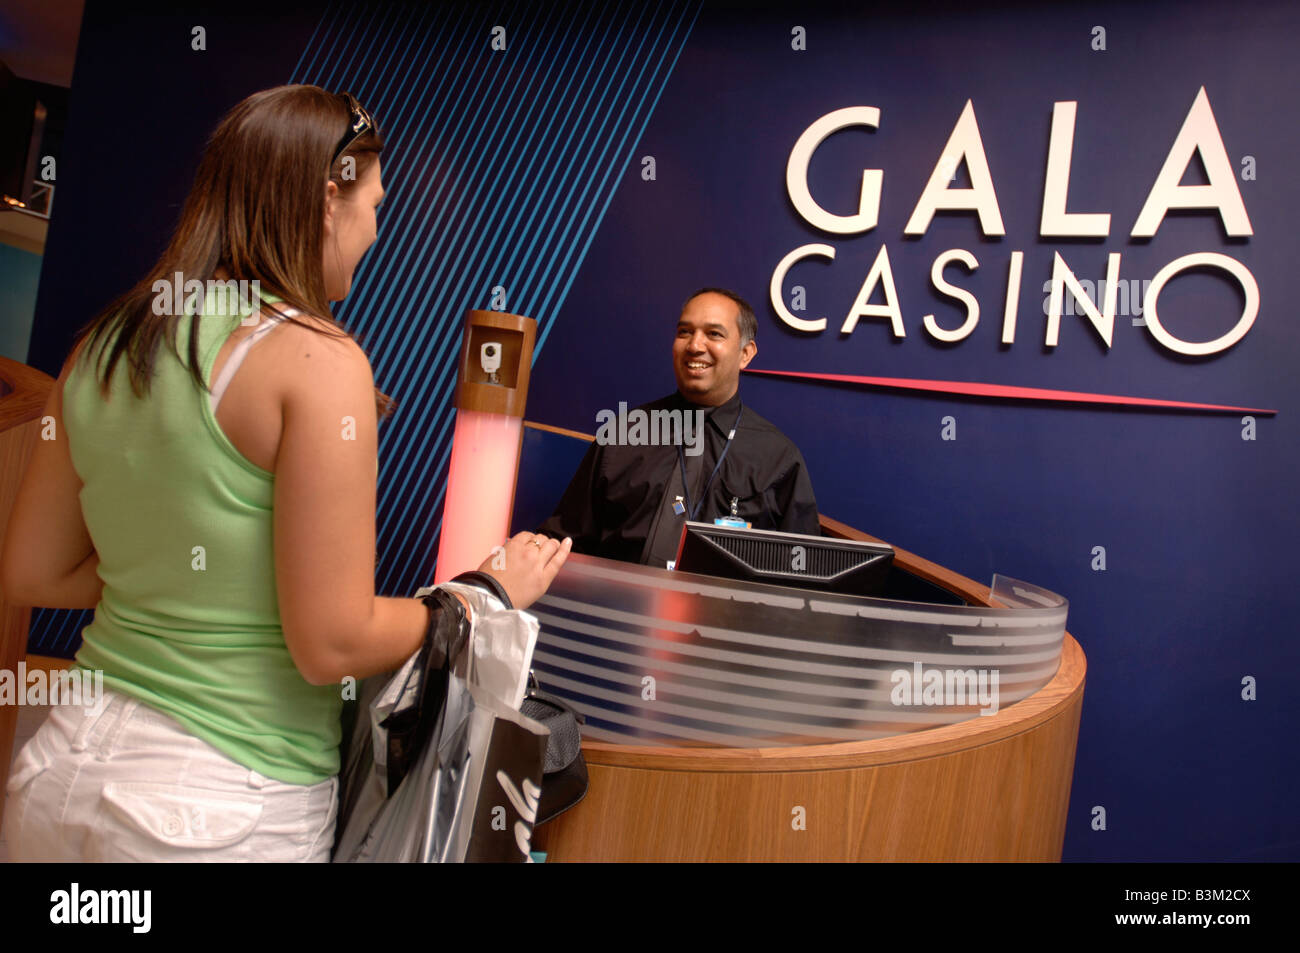 A SECURITY GUARD IN THE RECEPTION AREA OF A CASINO UK Stock Photo